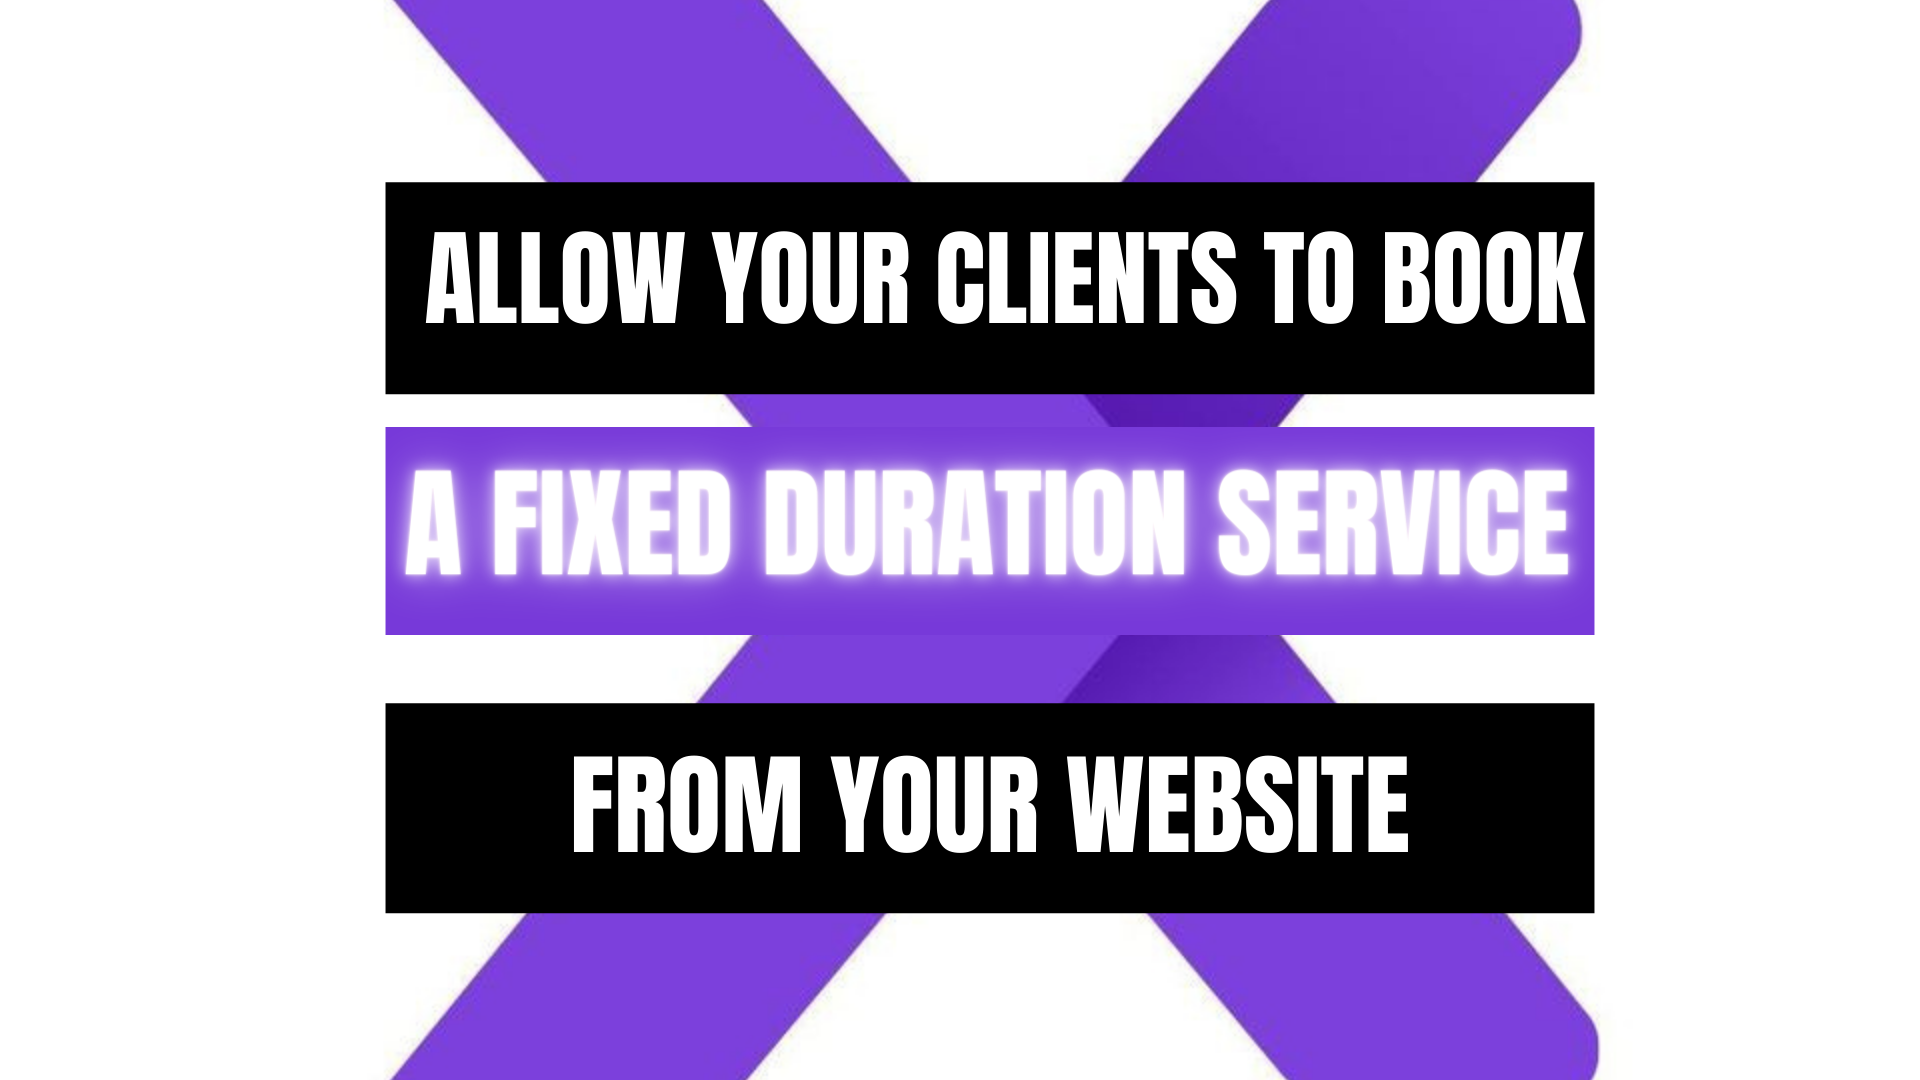 Peekaboox - How to set up a fixed duration service and how it works